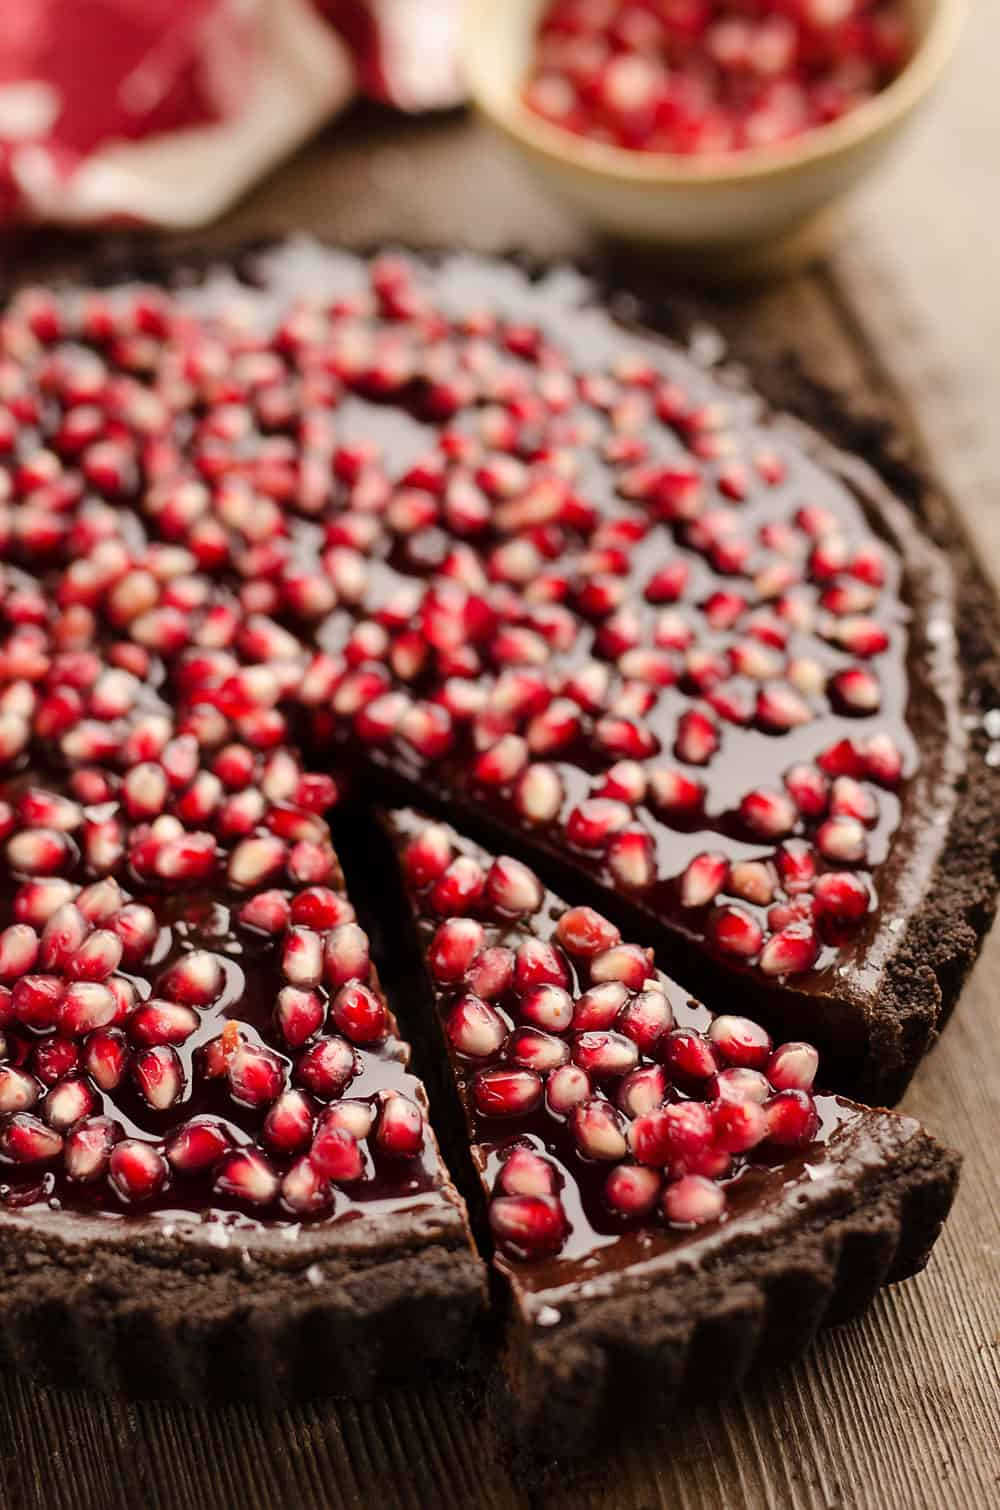 Pomegranate Pics Salted Dark Chocolate Pomegranate Tart